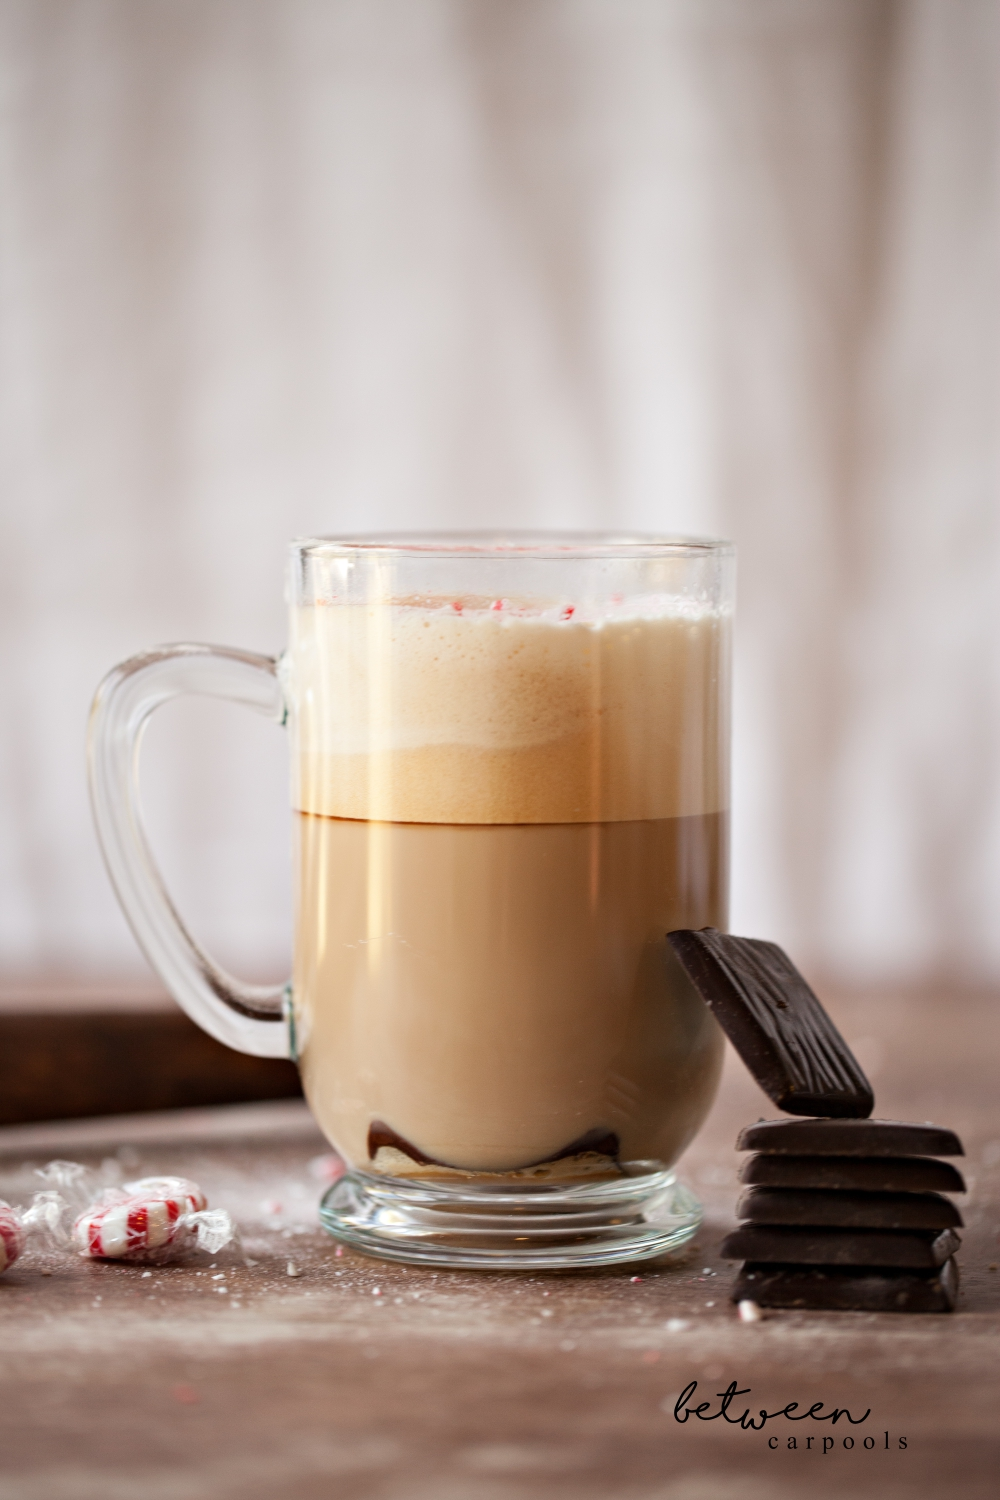 Mocha Mint. This is my winter indulgence. Add a chocolate mint thin (from the green box) to your mug. Brew a shot of Nespresso directly over it. Add frothed milk. Crush some starlight mints with a rolling pin and sprinkle on top.